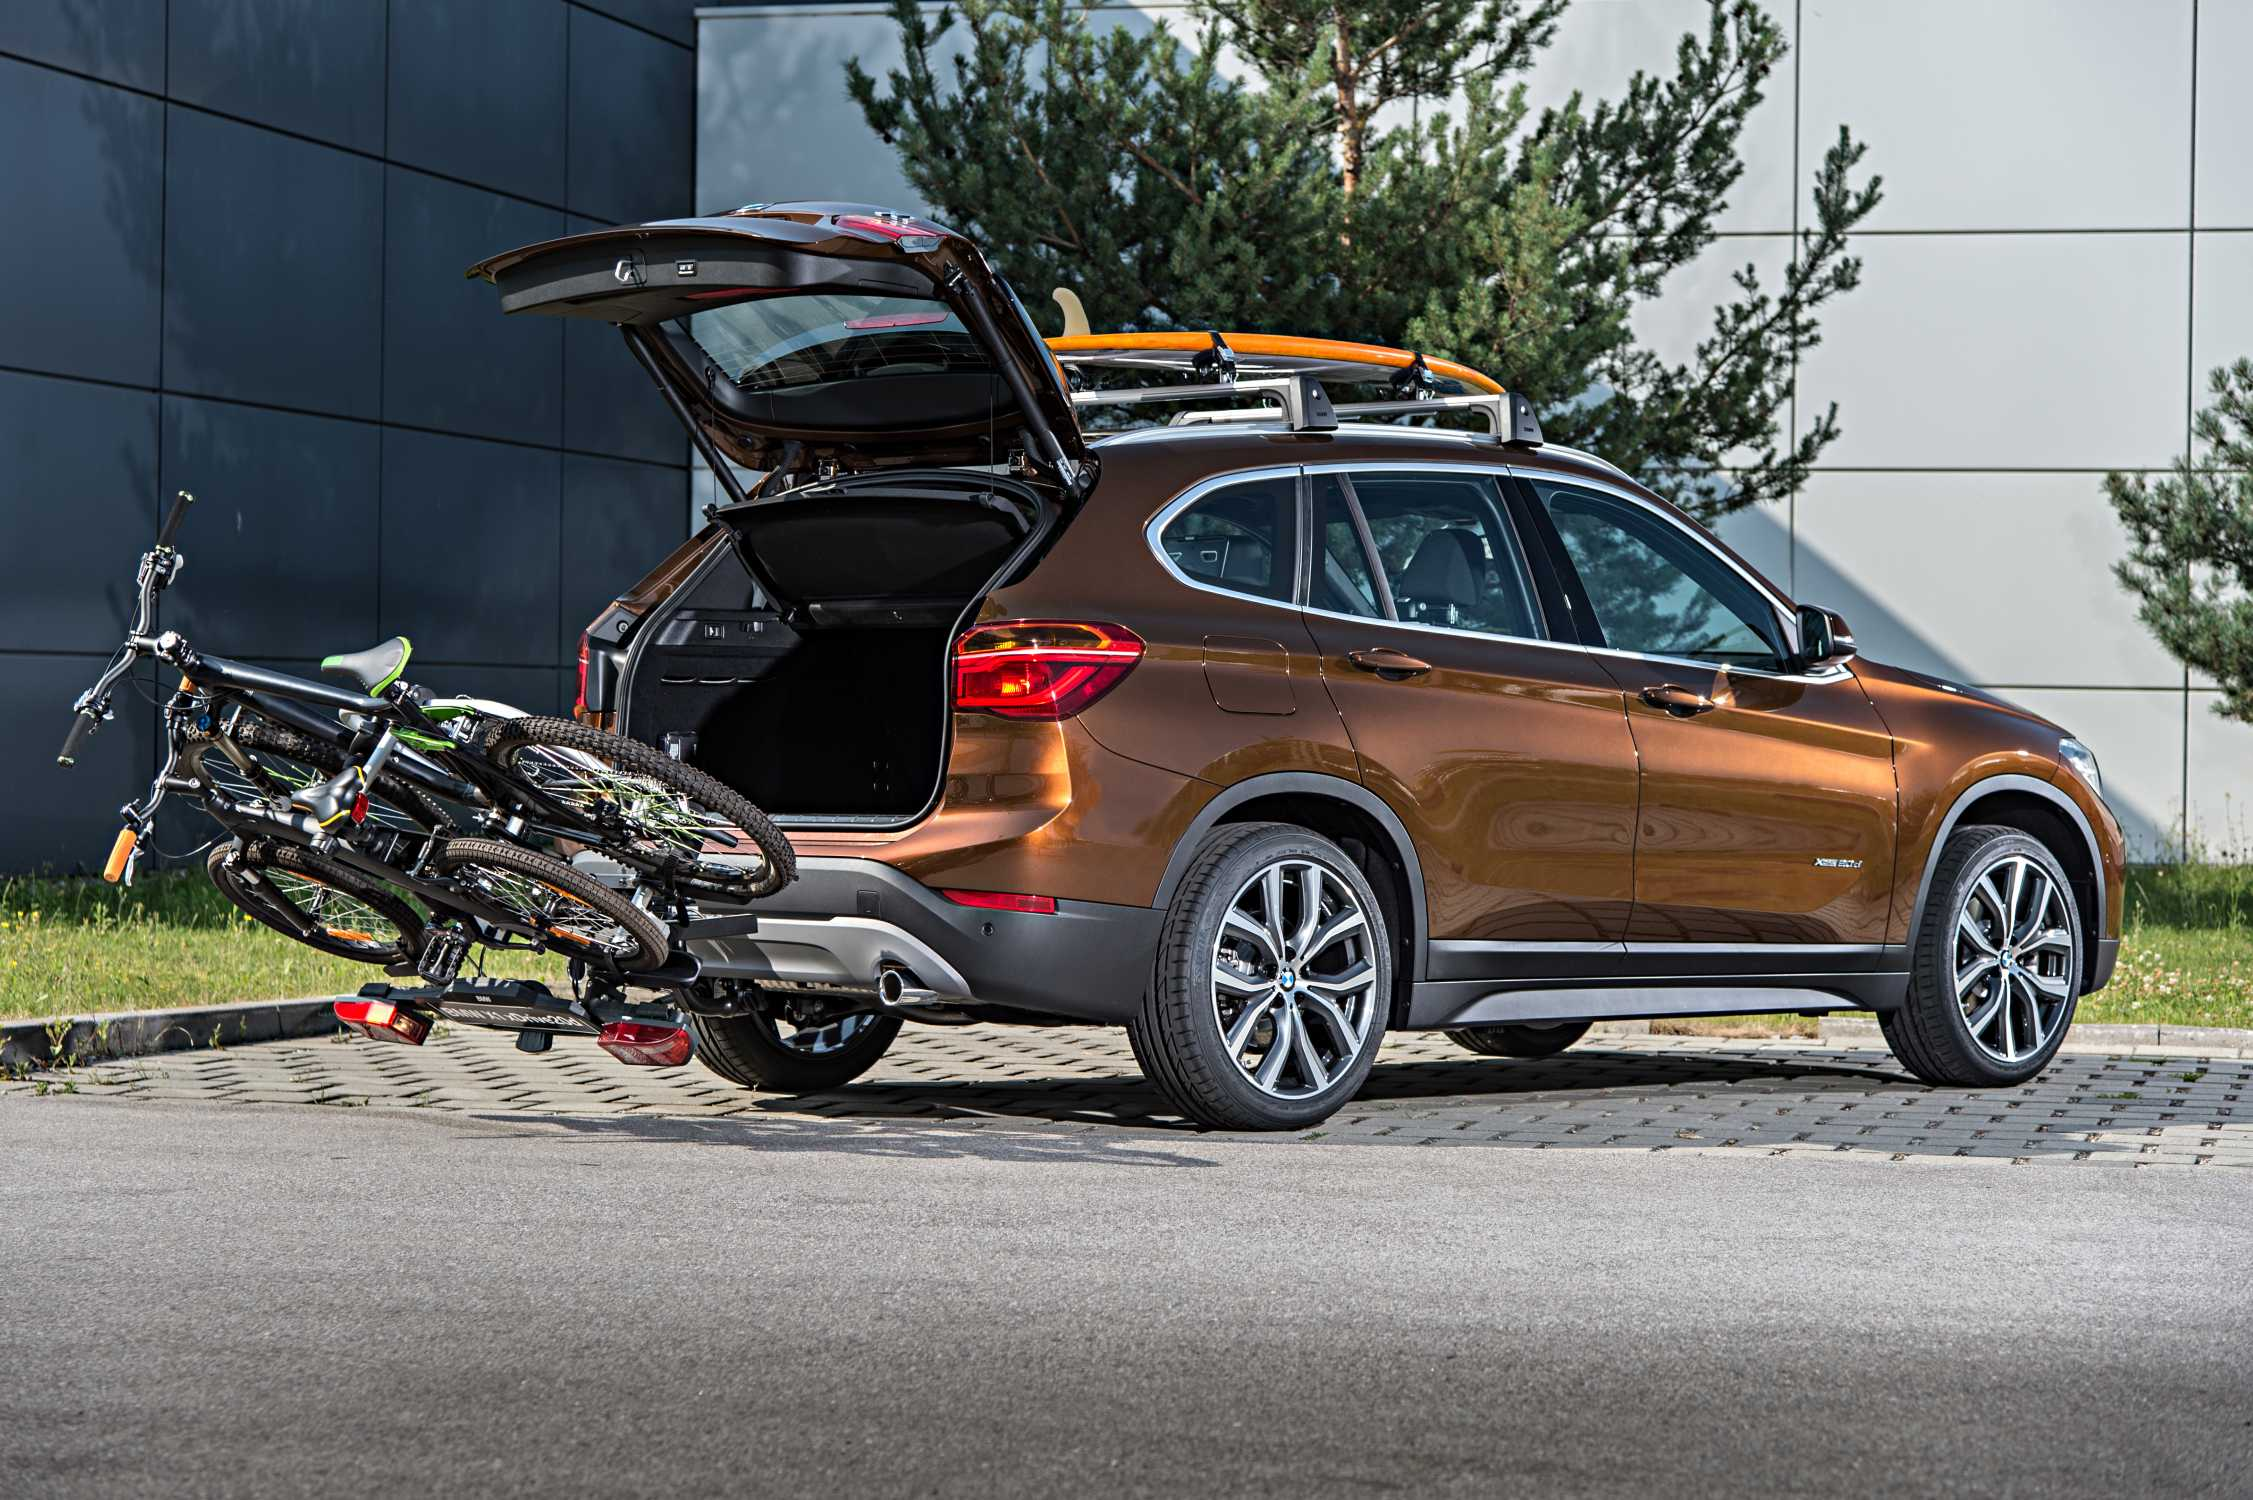 The New Bmw X1 On Location Pictures Rear Mounted Bike Carrier